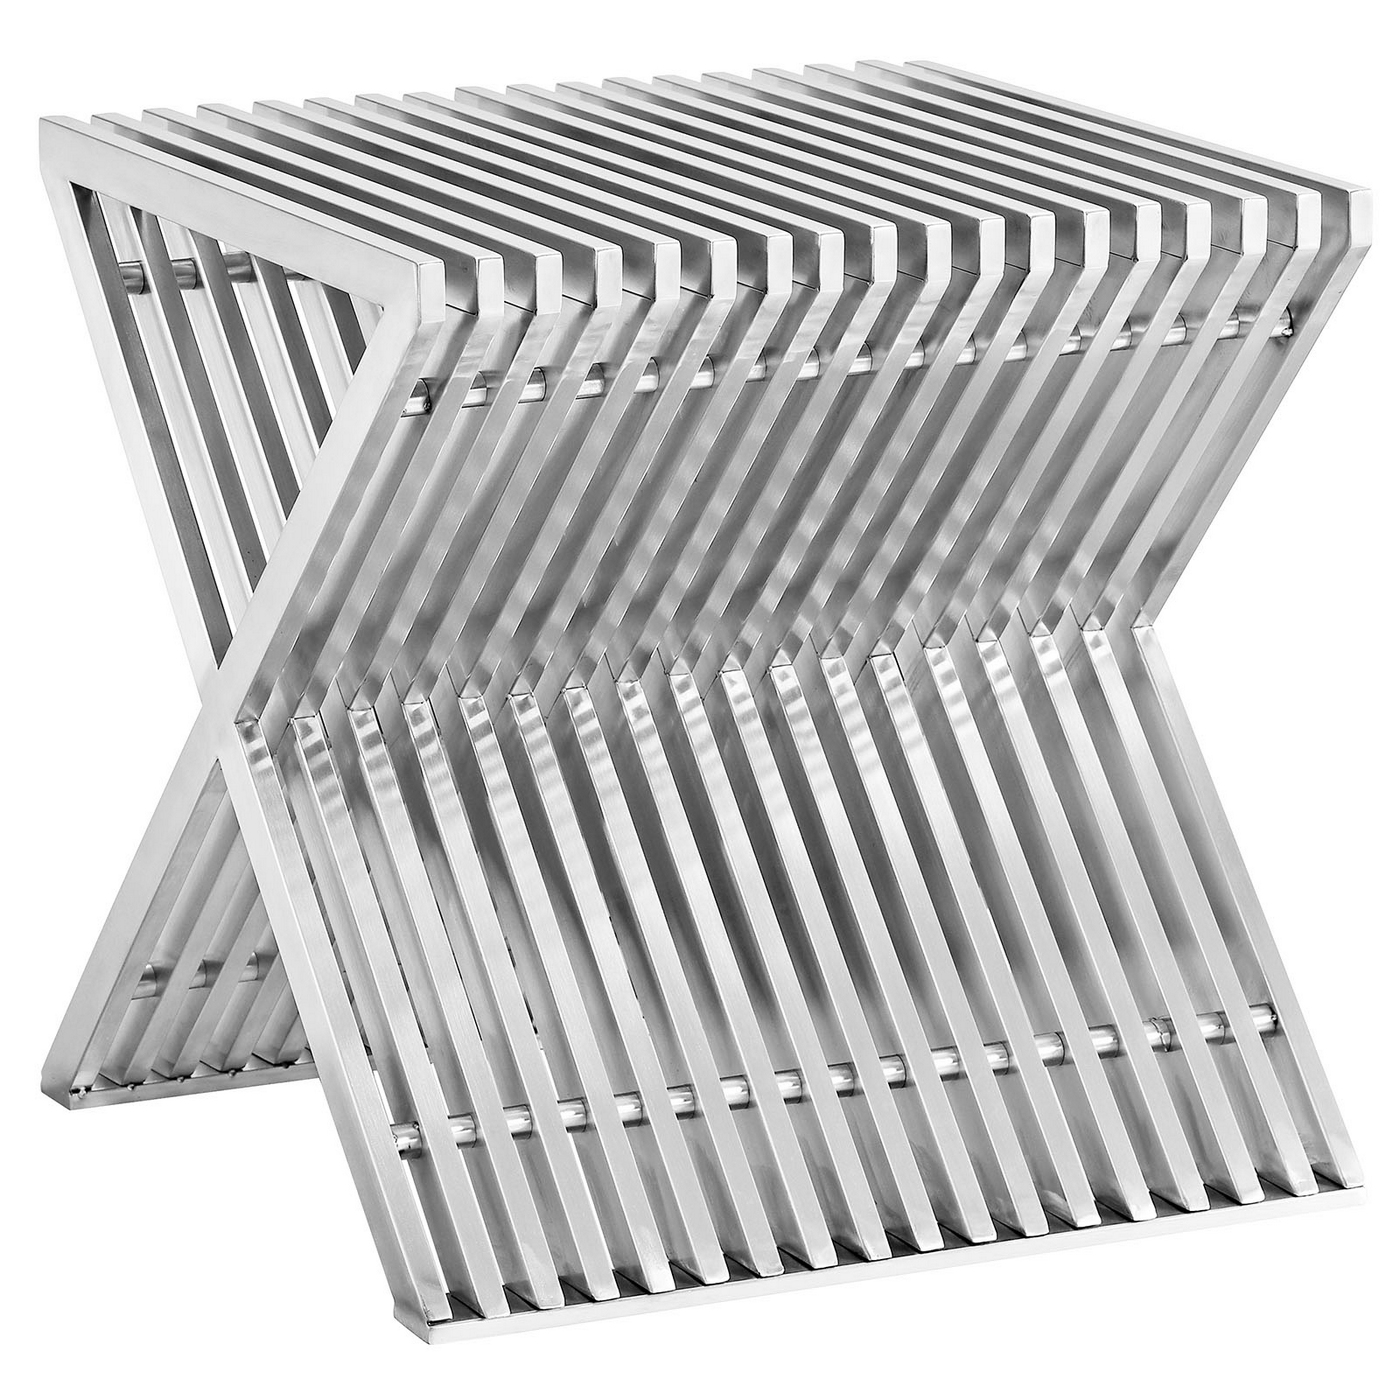 High End Stainless Steel Flatware Press Modern Slatted End Table With Quotx Quot Style Base In